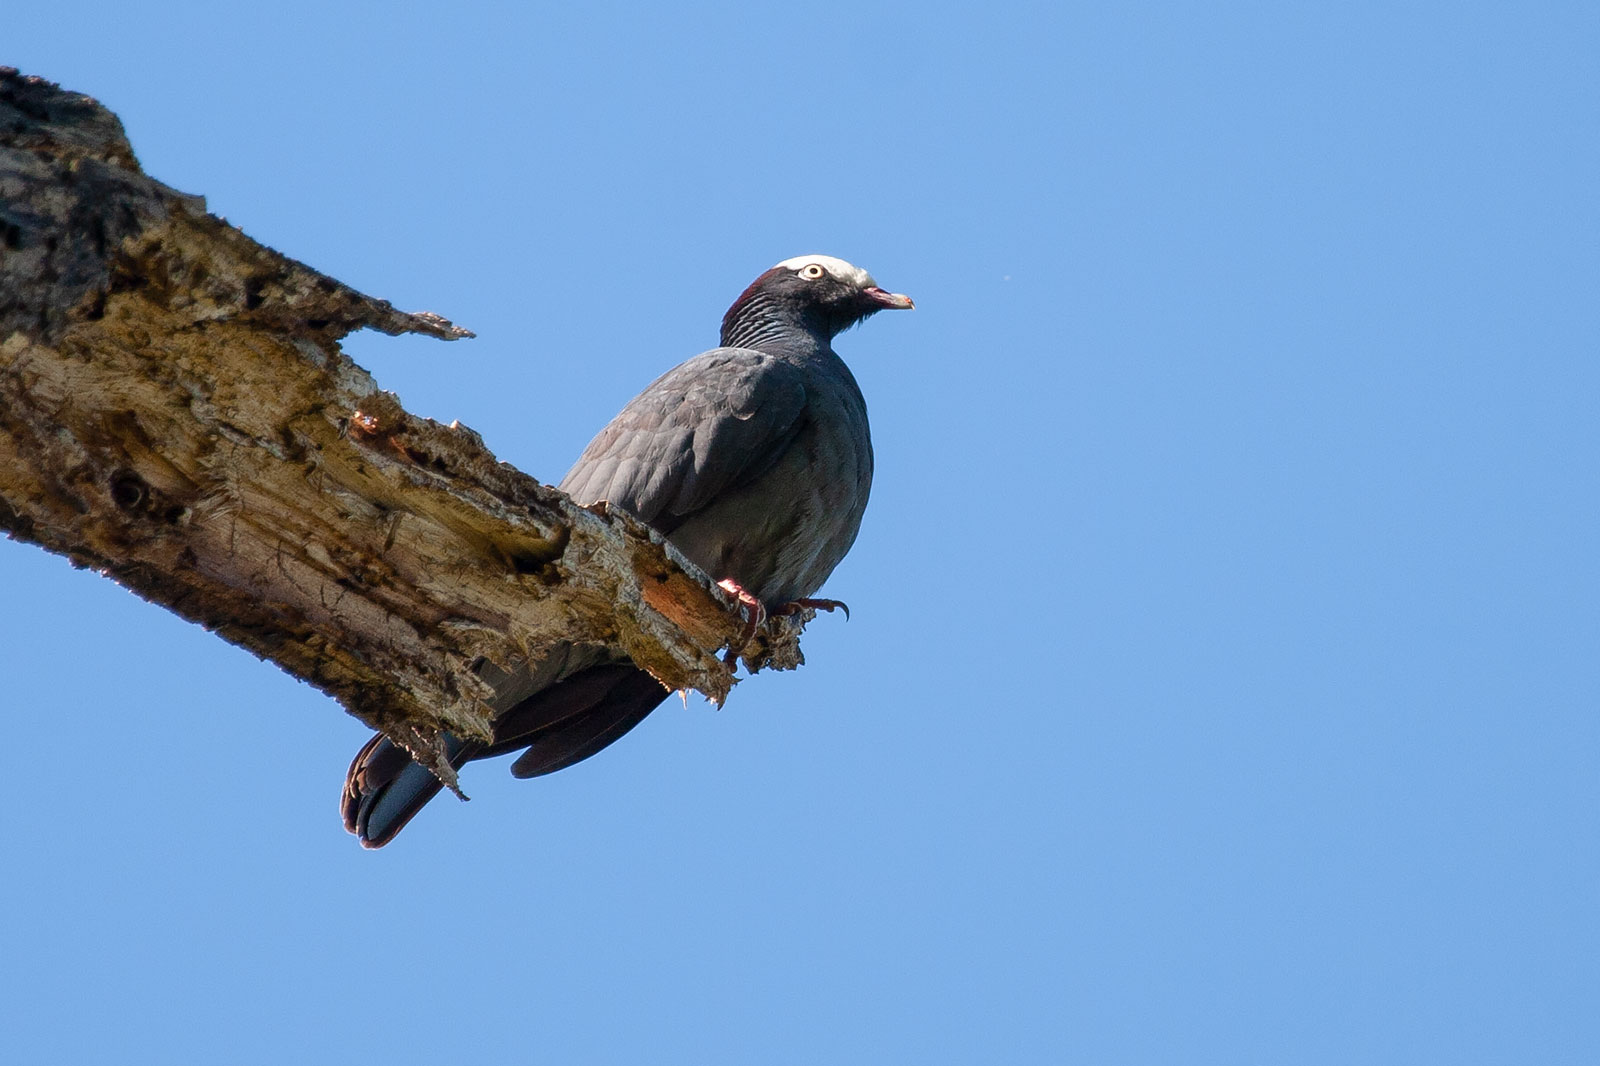 White crowned pigeon - photo#19